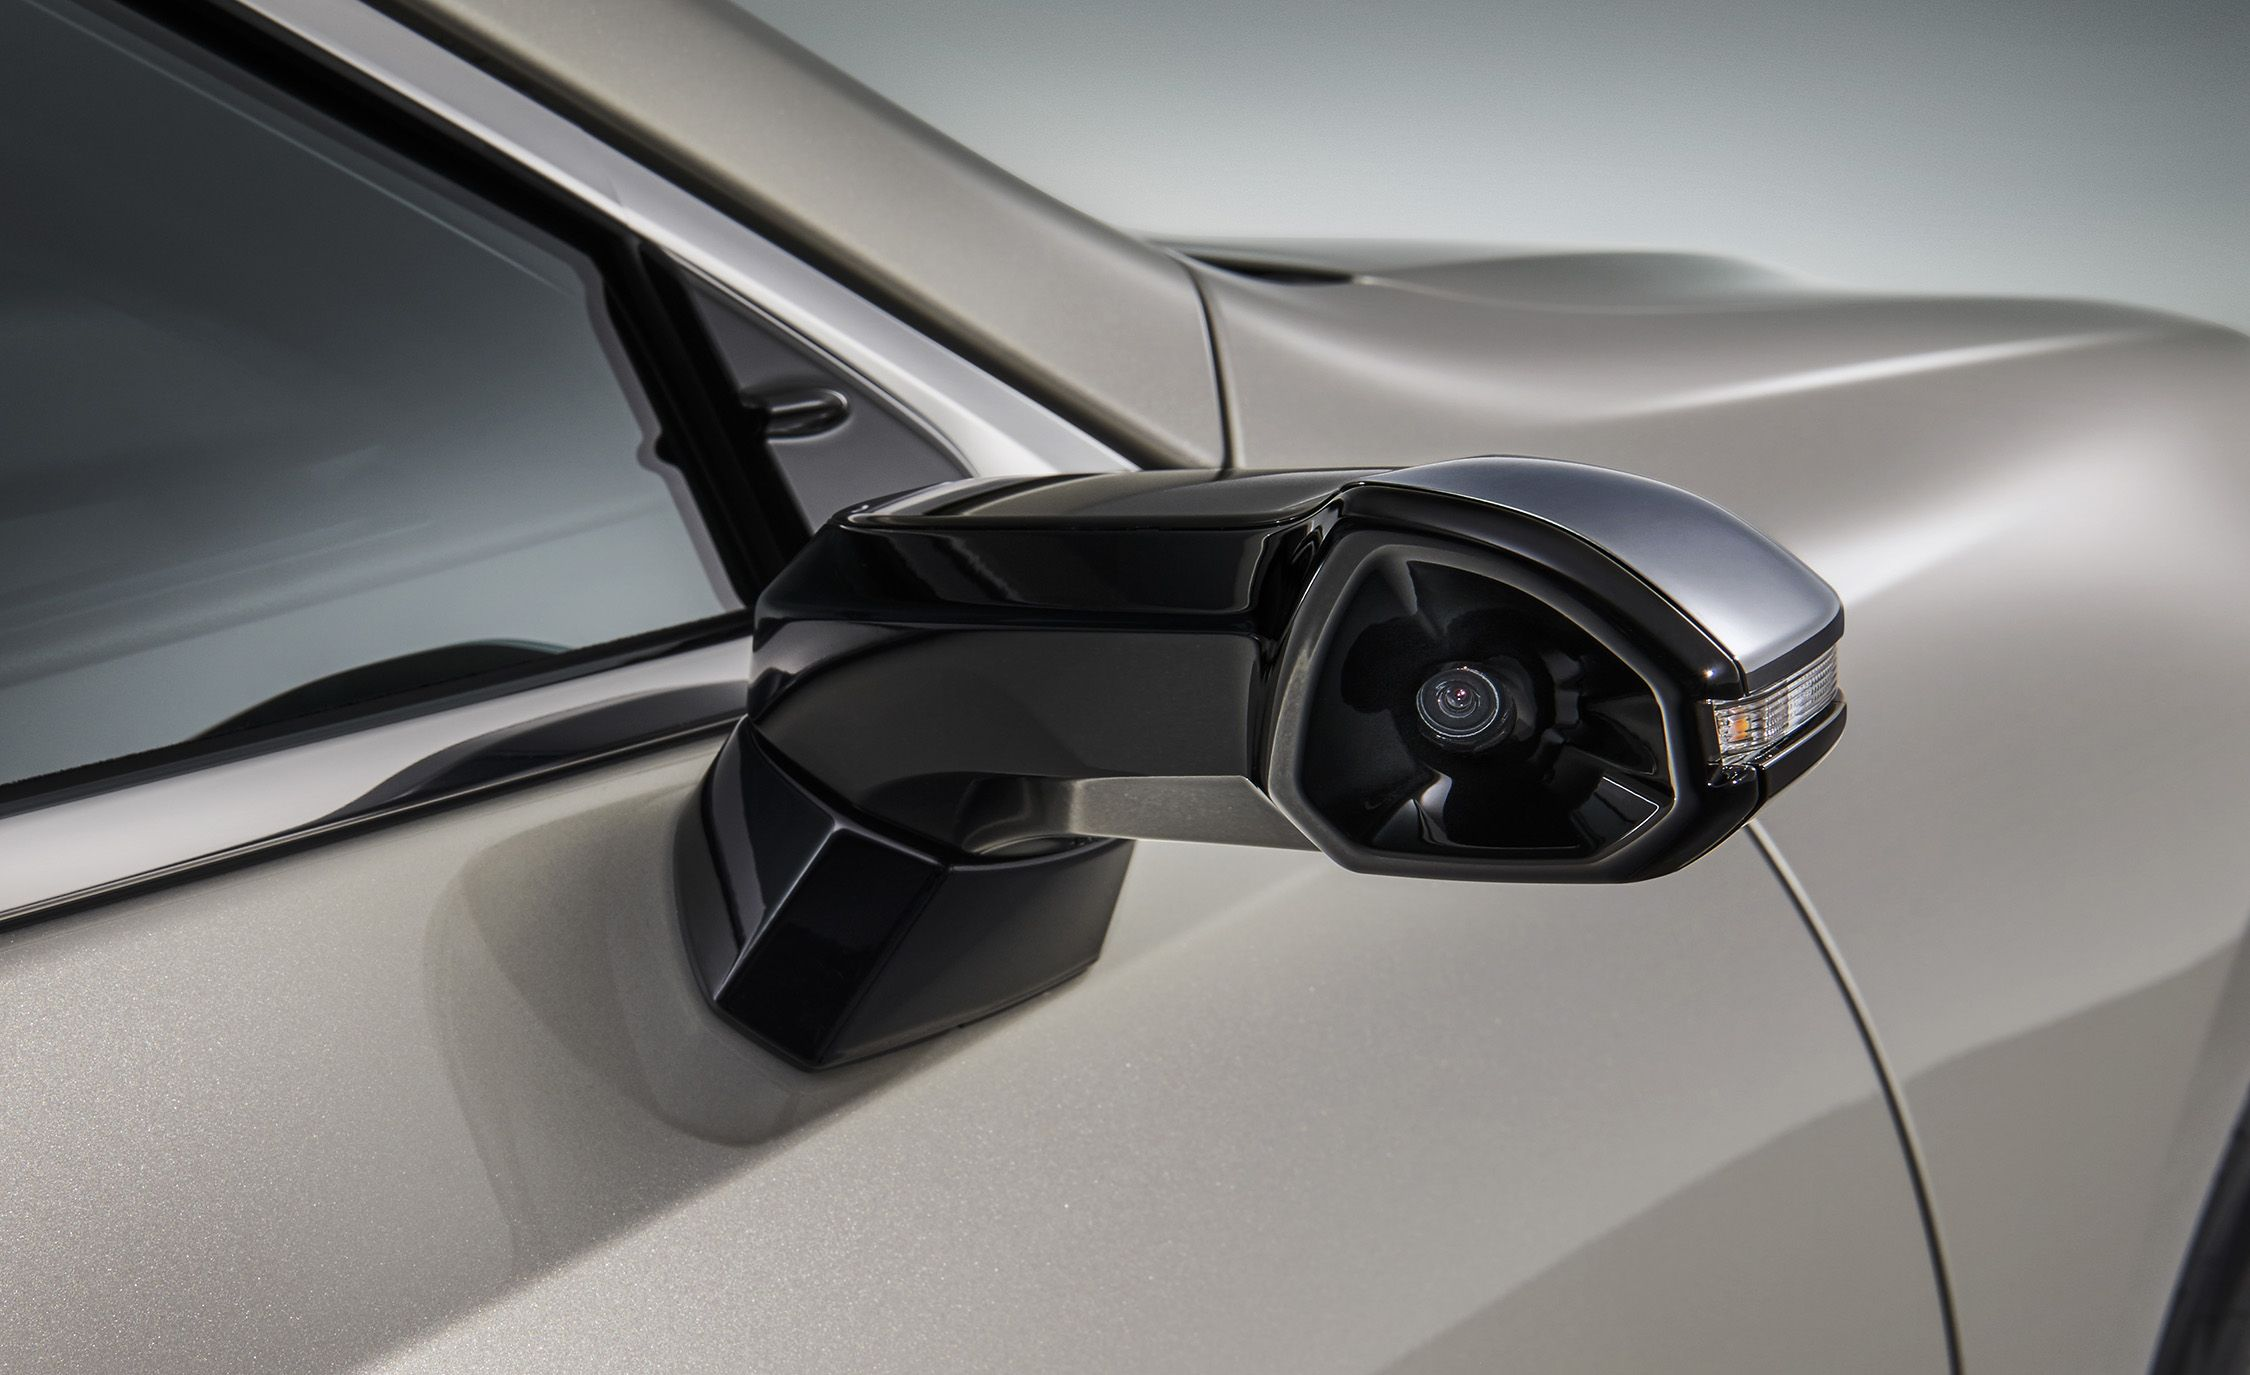 The Lexus ES Will Be the First Mass-Produced Car with Cameras Instead of Side-View Mirrors